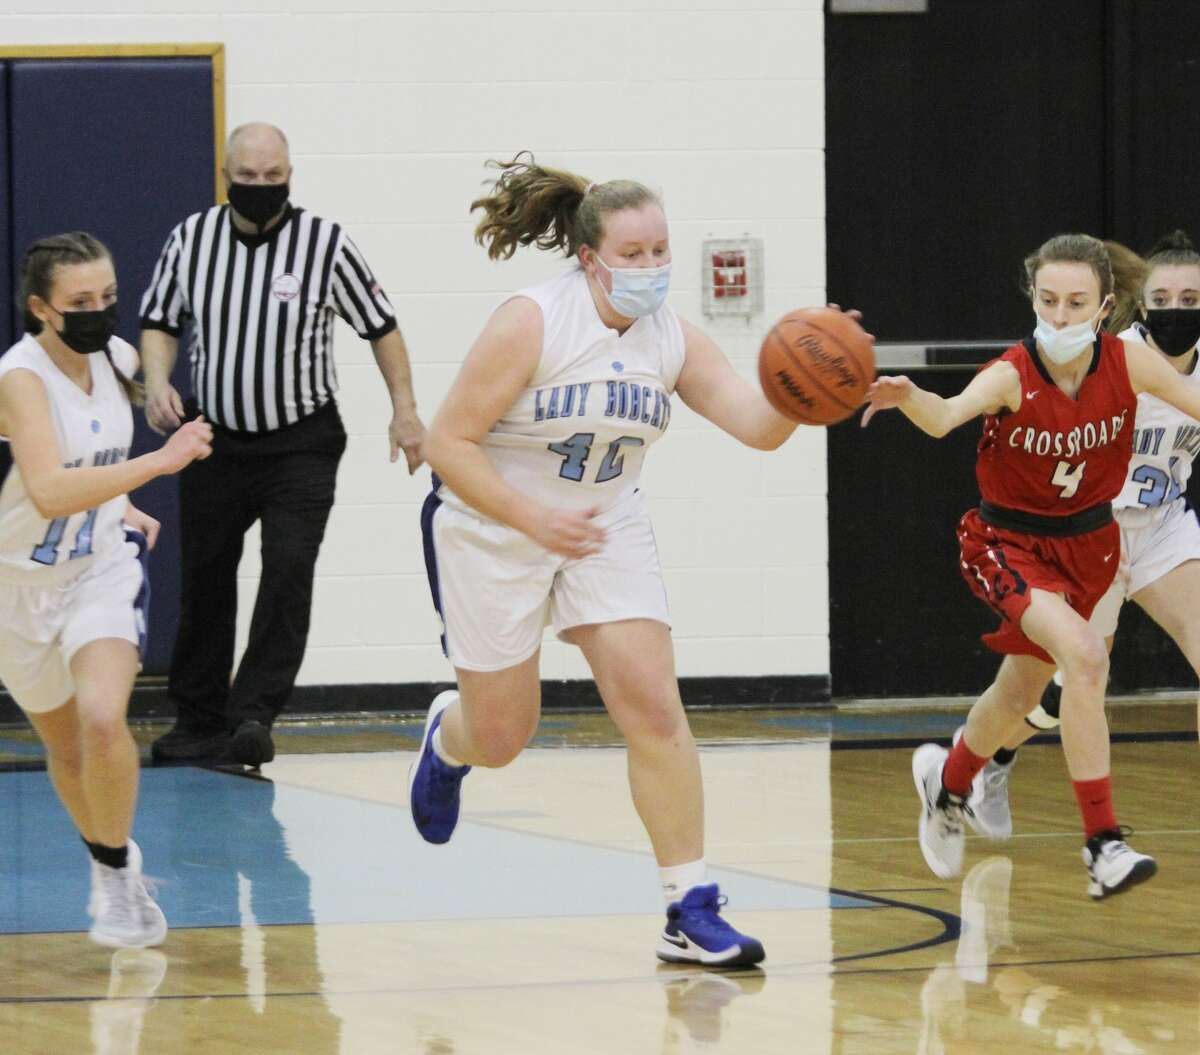 The young Brethren girls basketball team went 5-7 in the regular season before bowing out of the district tournament in the quarterfinal round.